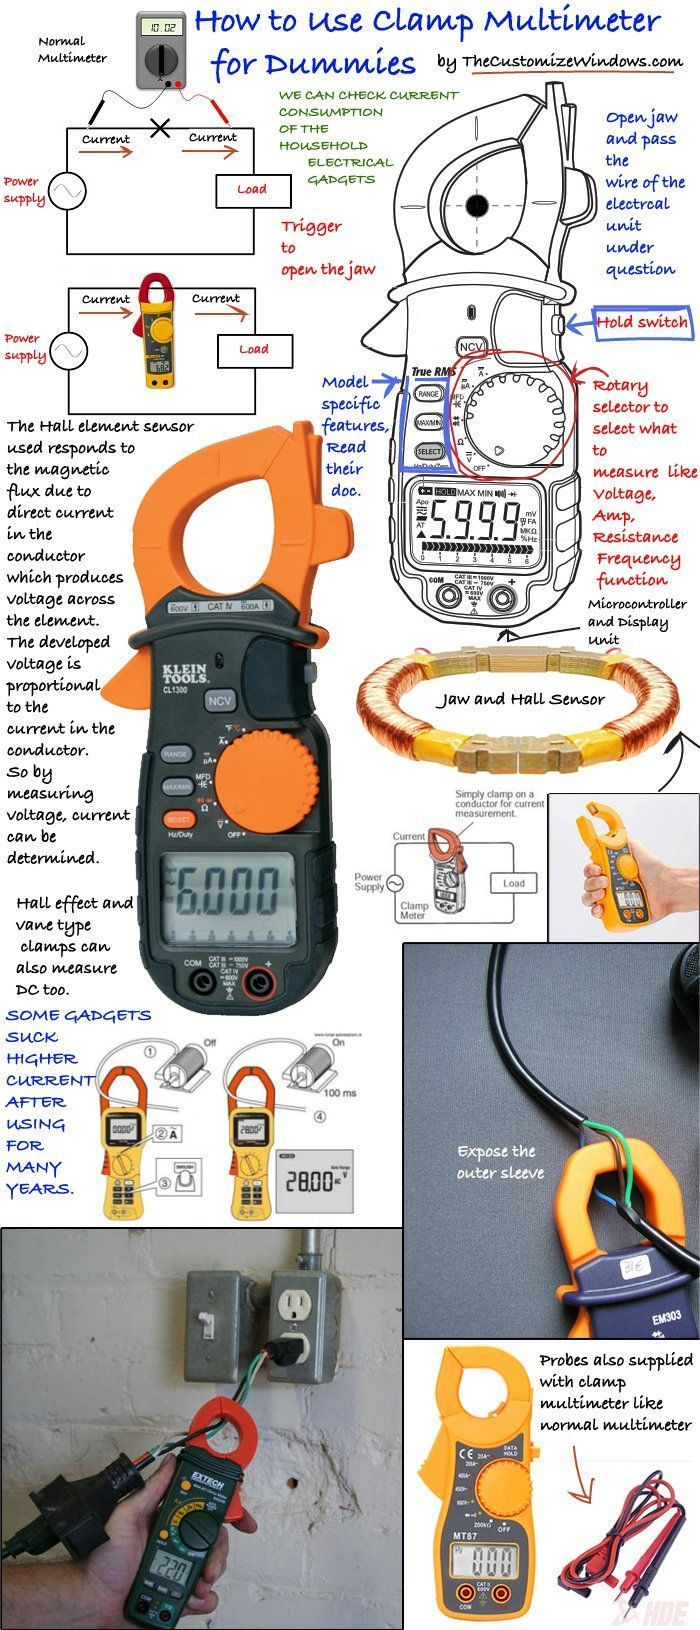 Clamp Multimeter How To Use For Dummies Is An Illustrated Guide On Home Telephone Wiring Measuring Current A Wire Of Gadget Working Principle Also Explained